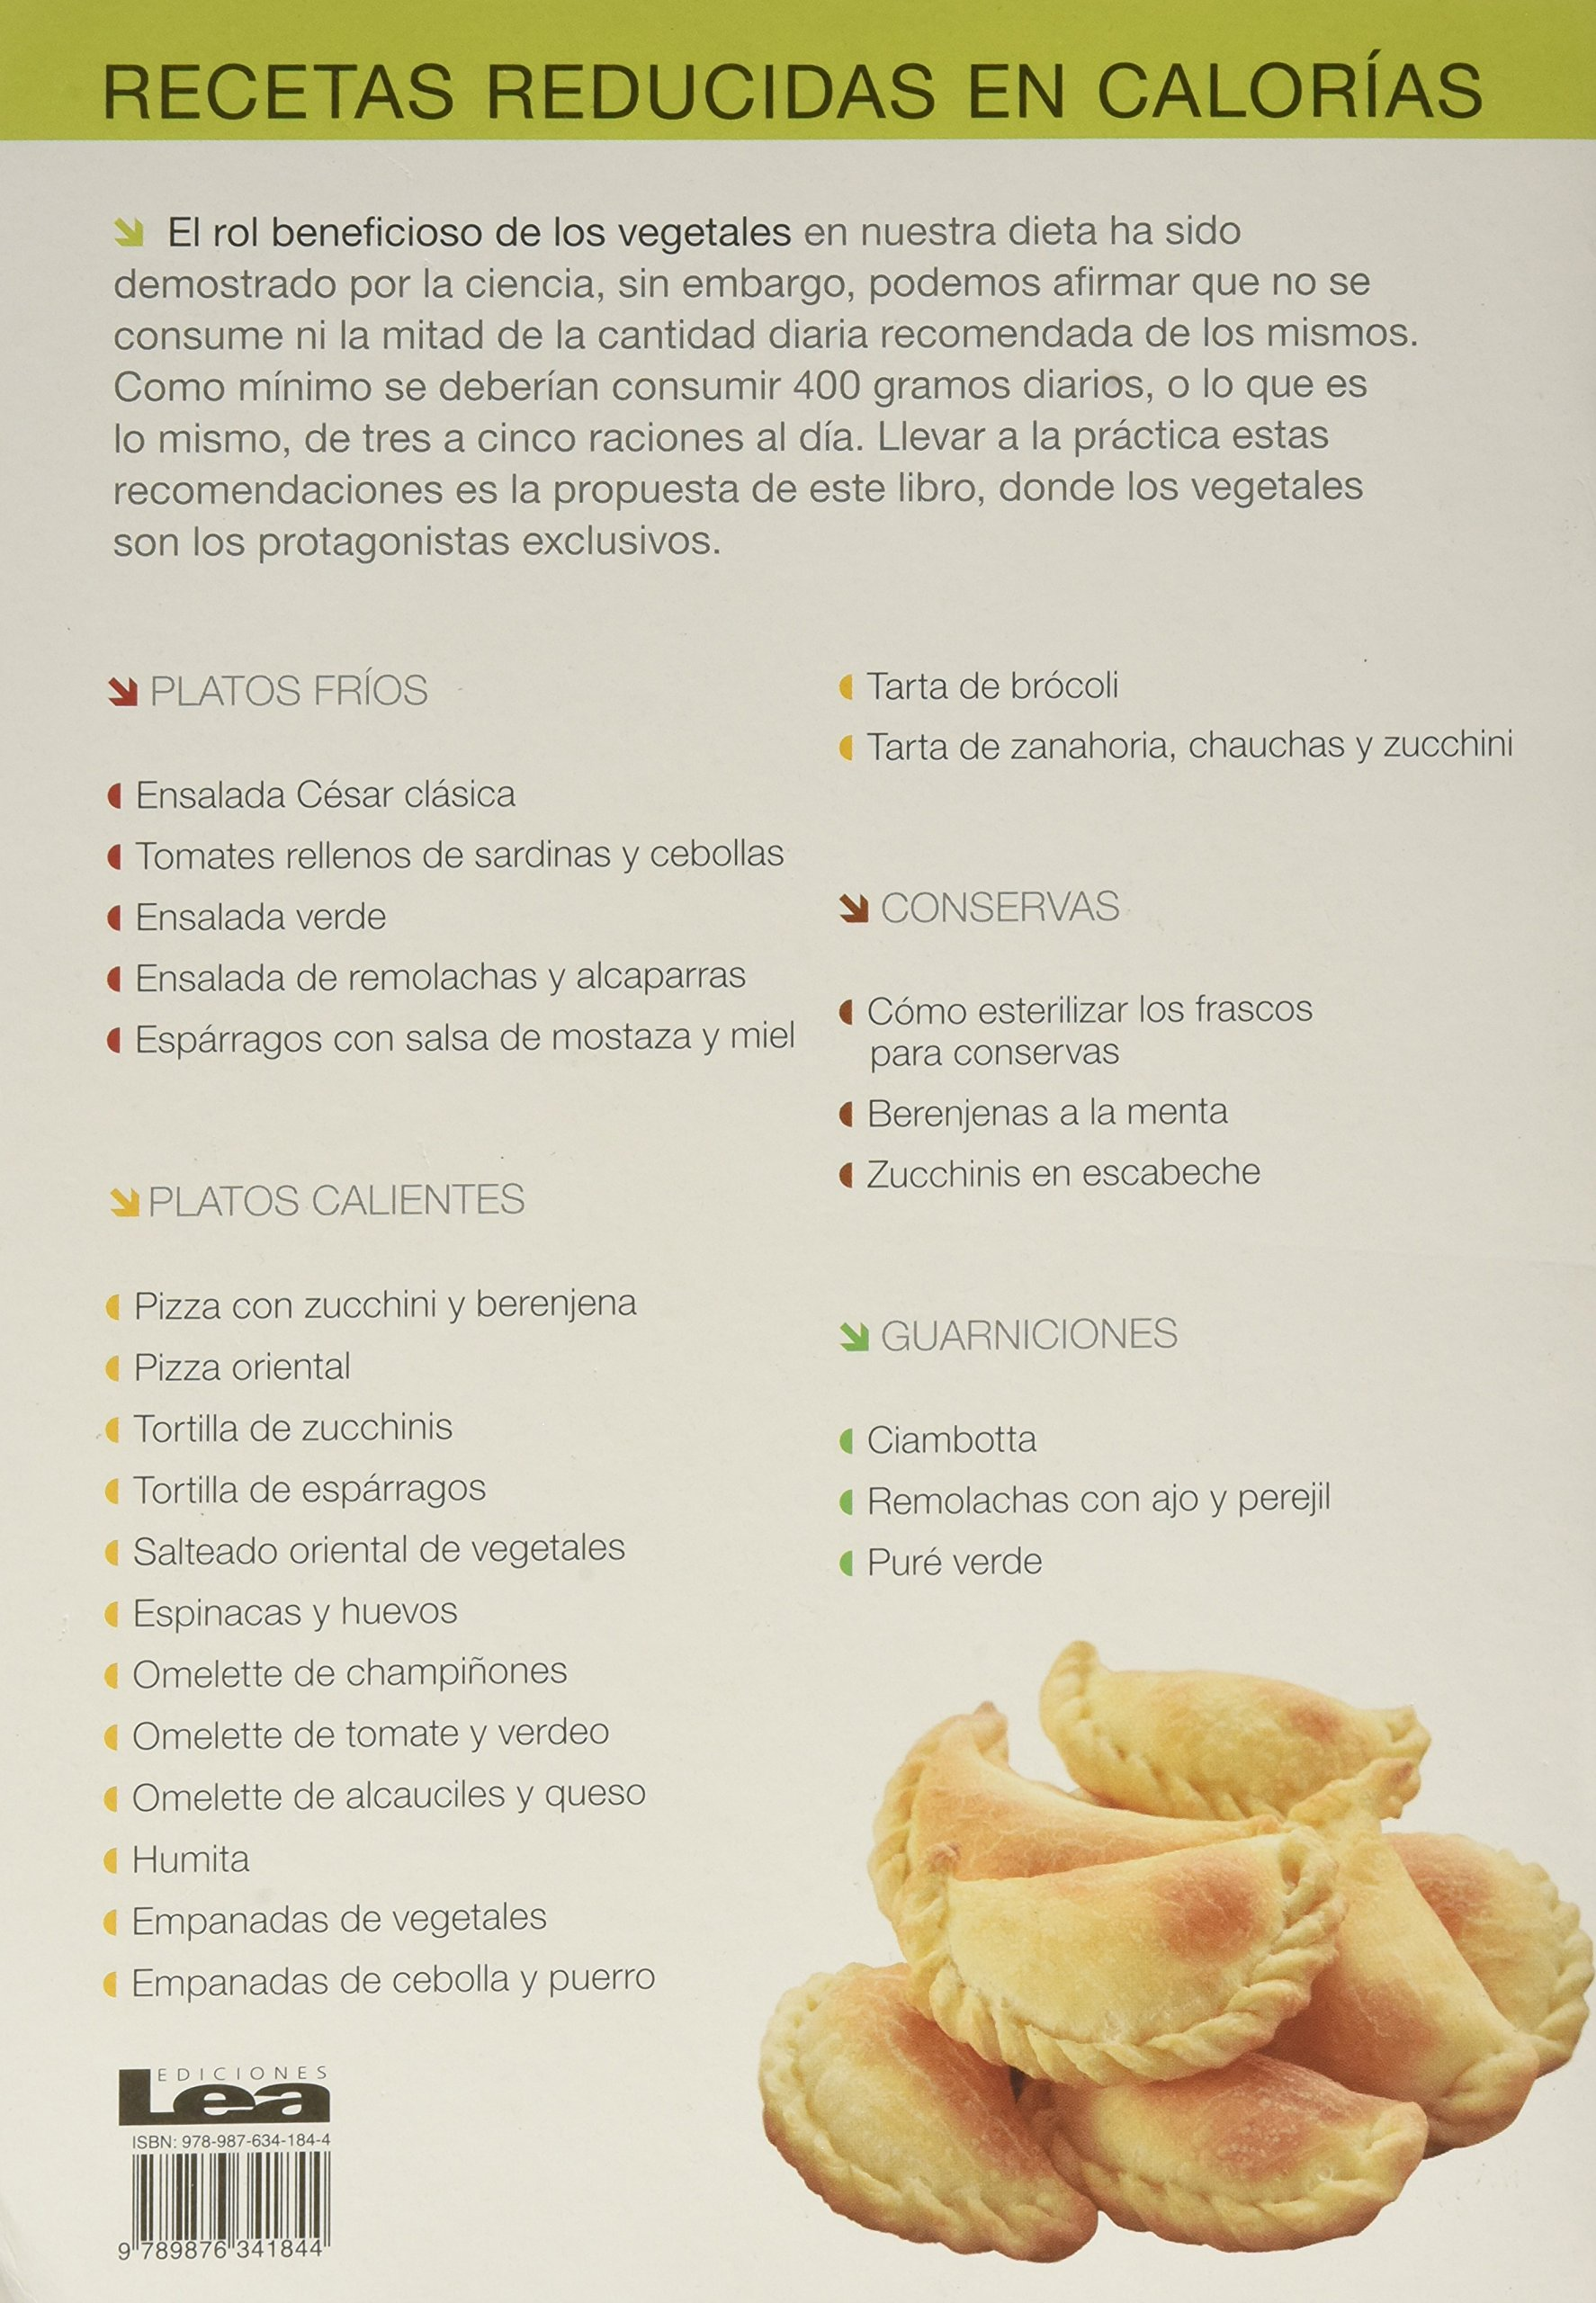 Vegetales: Platos fríos y calientes, conservas y guarniciones (Recetas Reducidas En Calorias / Reduced Calorie Recipes) (Spanish Edition): Eduardo Casalins: ...